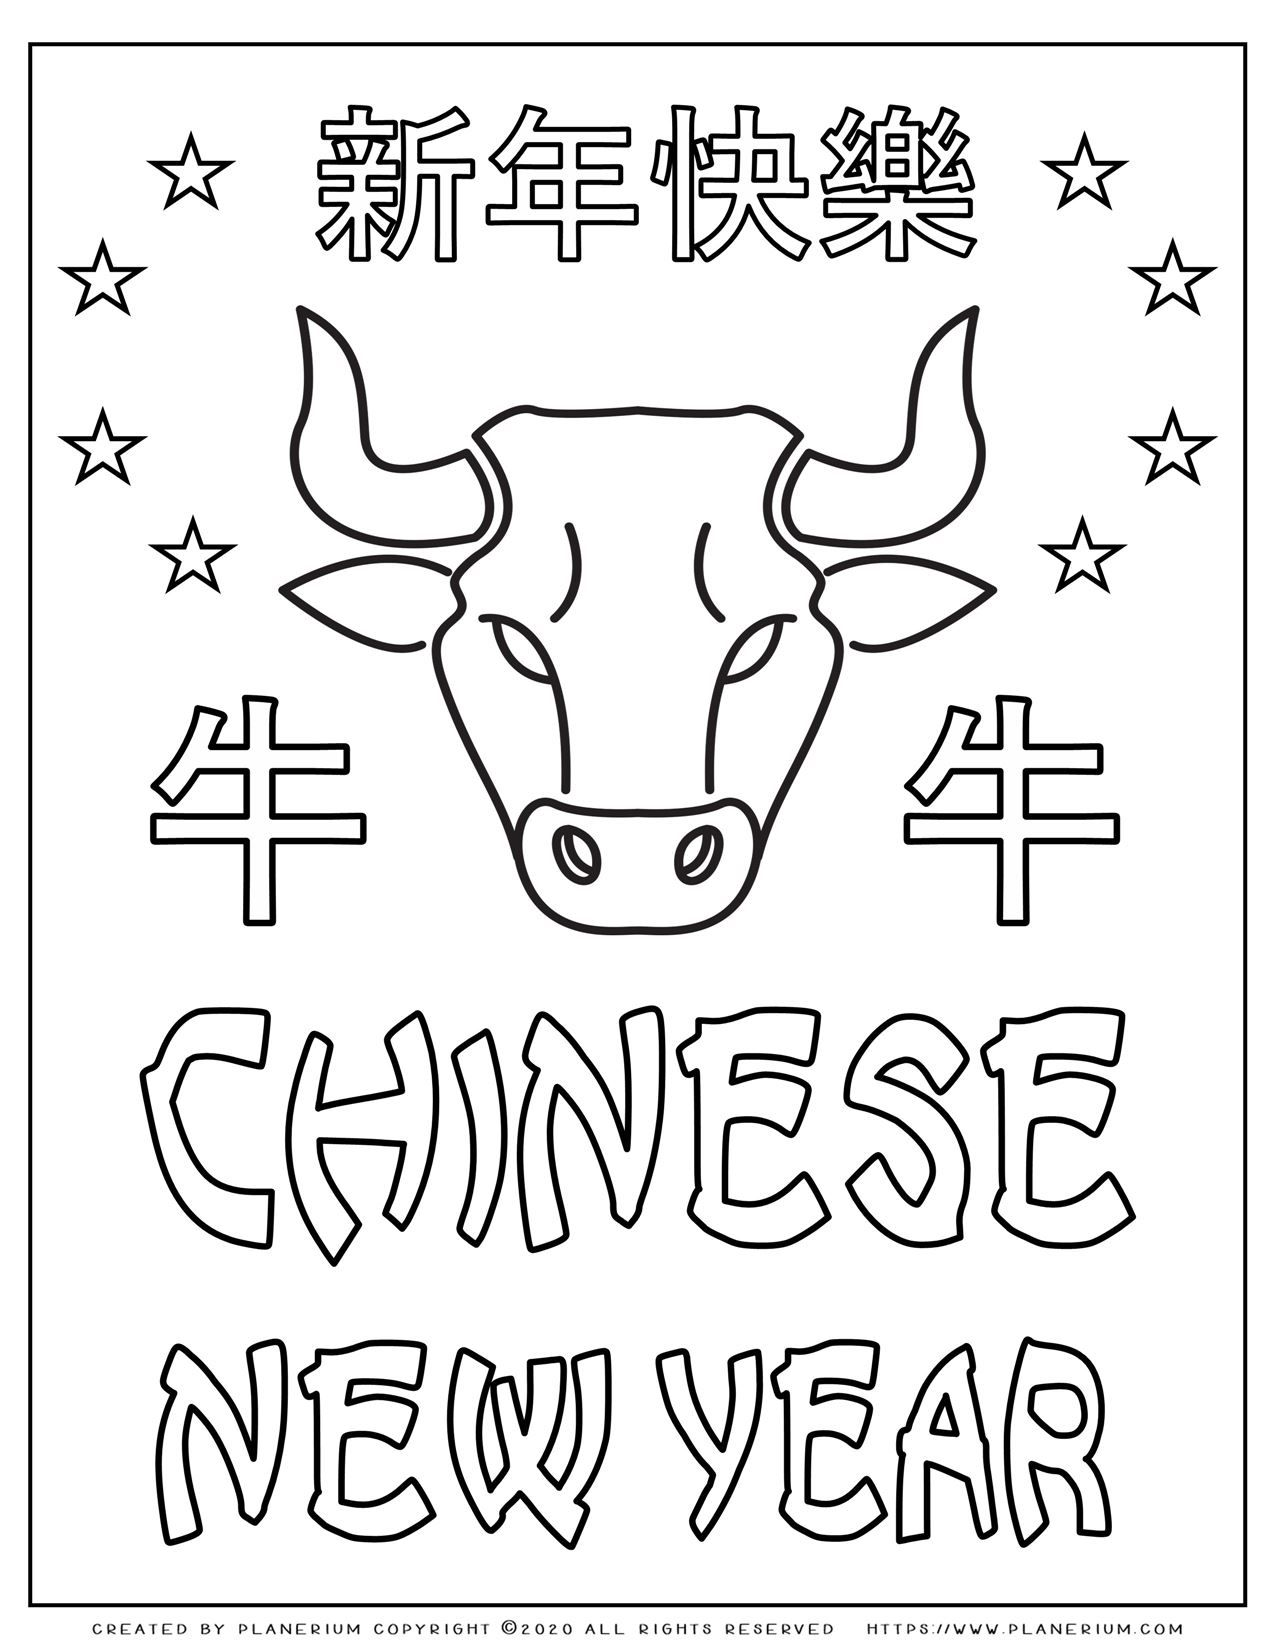 New Year January Coloring Pages Free Printable Fun To Help Kids Adults Welcome 2021 Printables 30seconds Mom New Year Coloring Pages Cool Coloring Pages New Year Printables